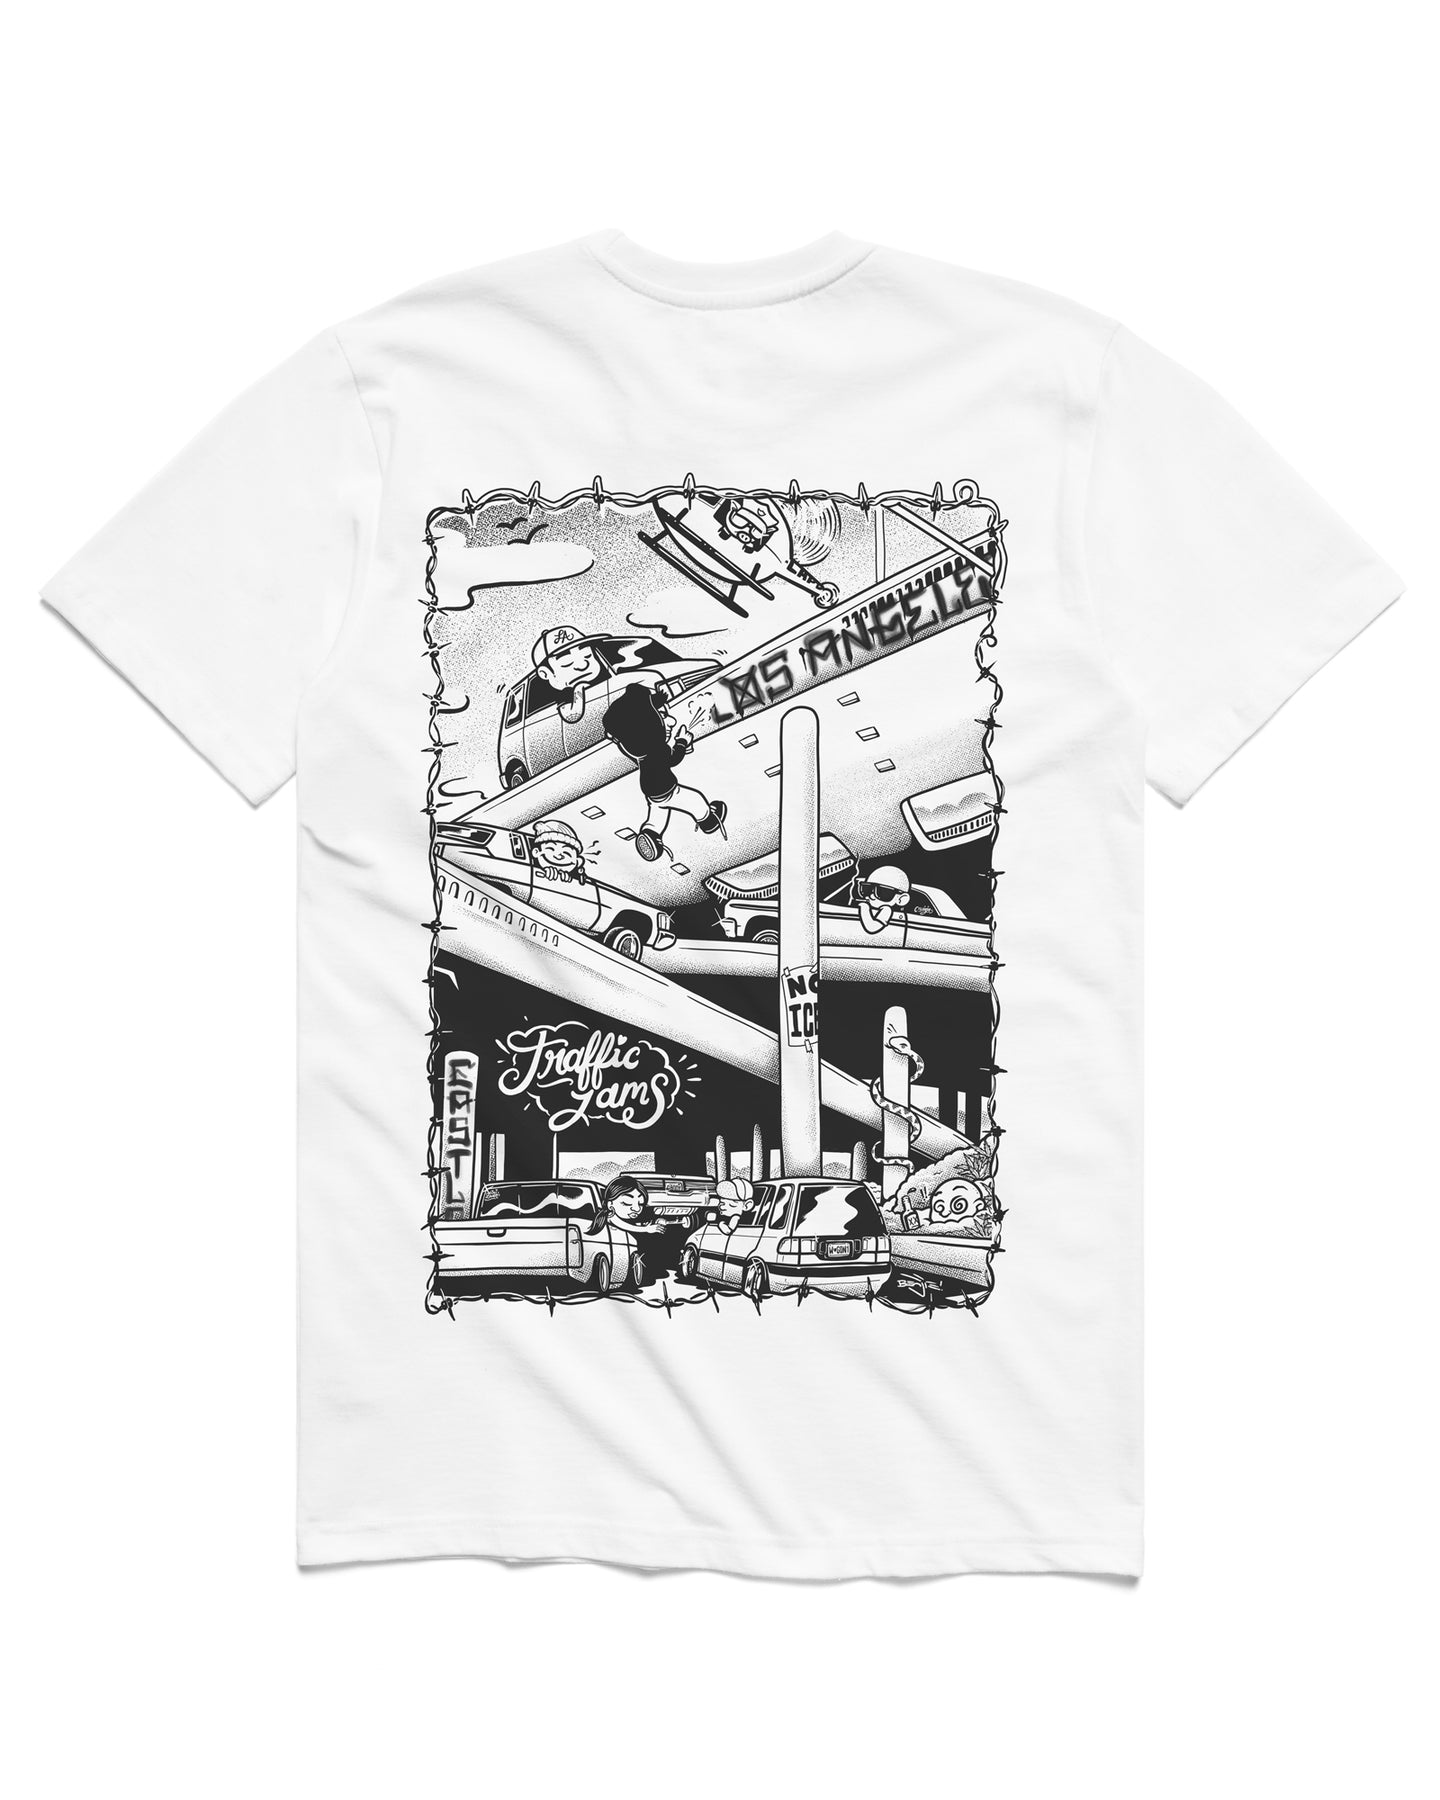 Traffic Jams Short Sleeve, White